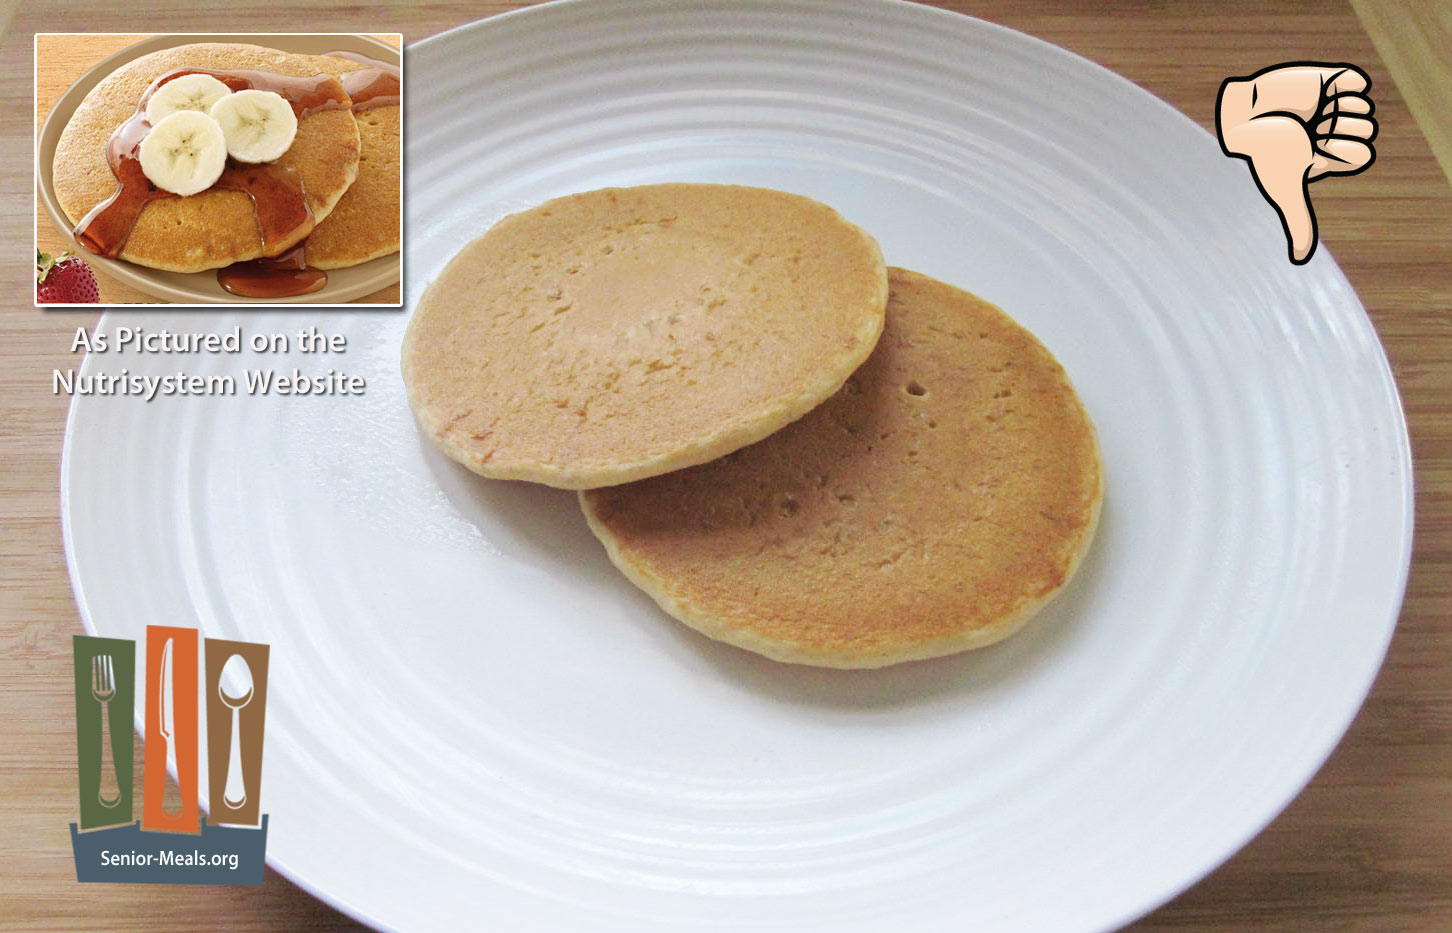 Nutrisystem review of their senior weight loss diet delivery service homestyle pancakes these are nothing you cant buy at the supermarket and reheat yourself the only difference is the money you would be saving solutioingenieria Gallery